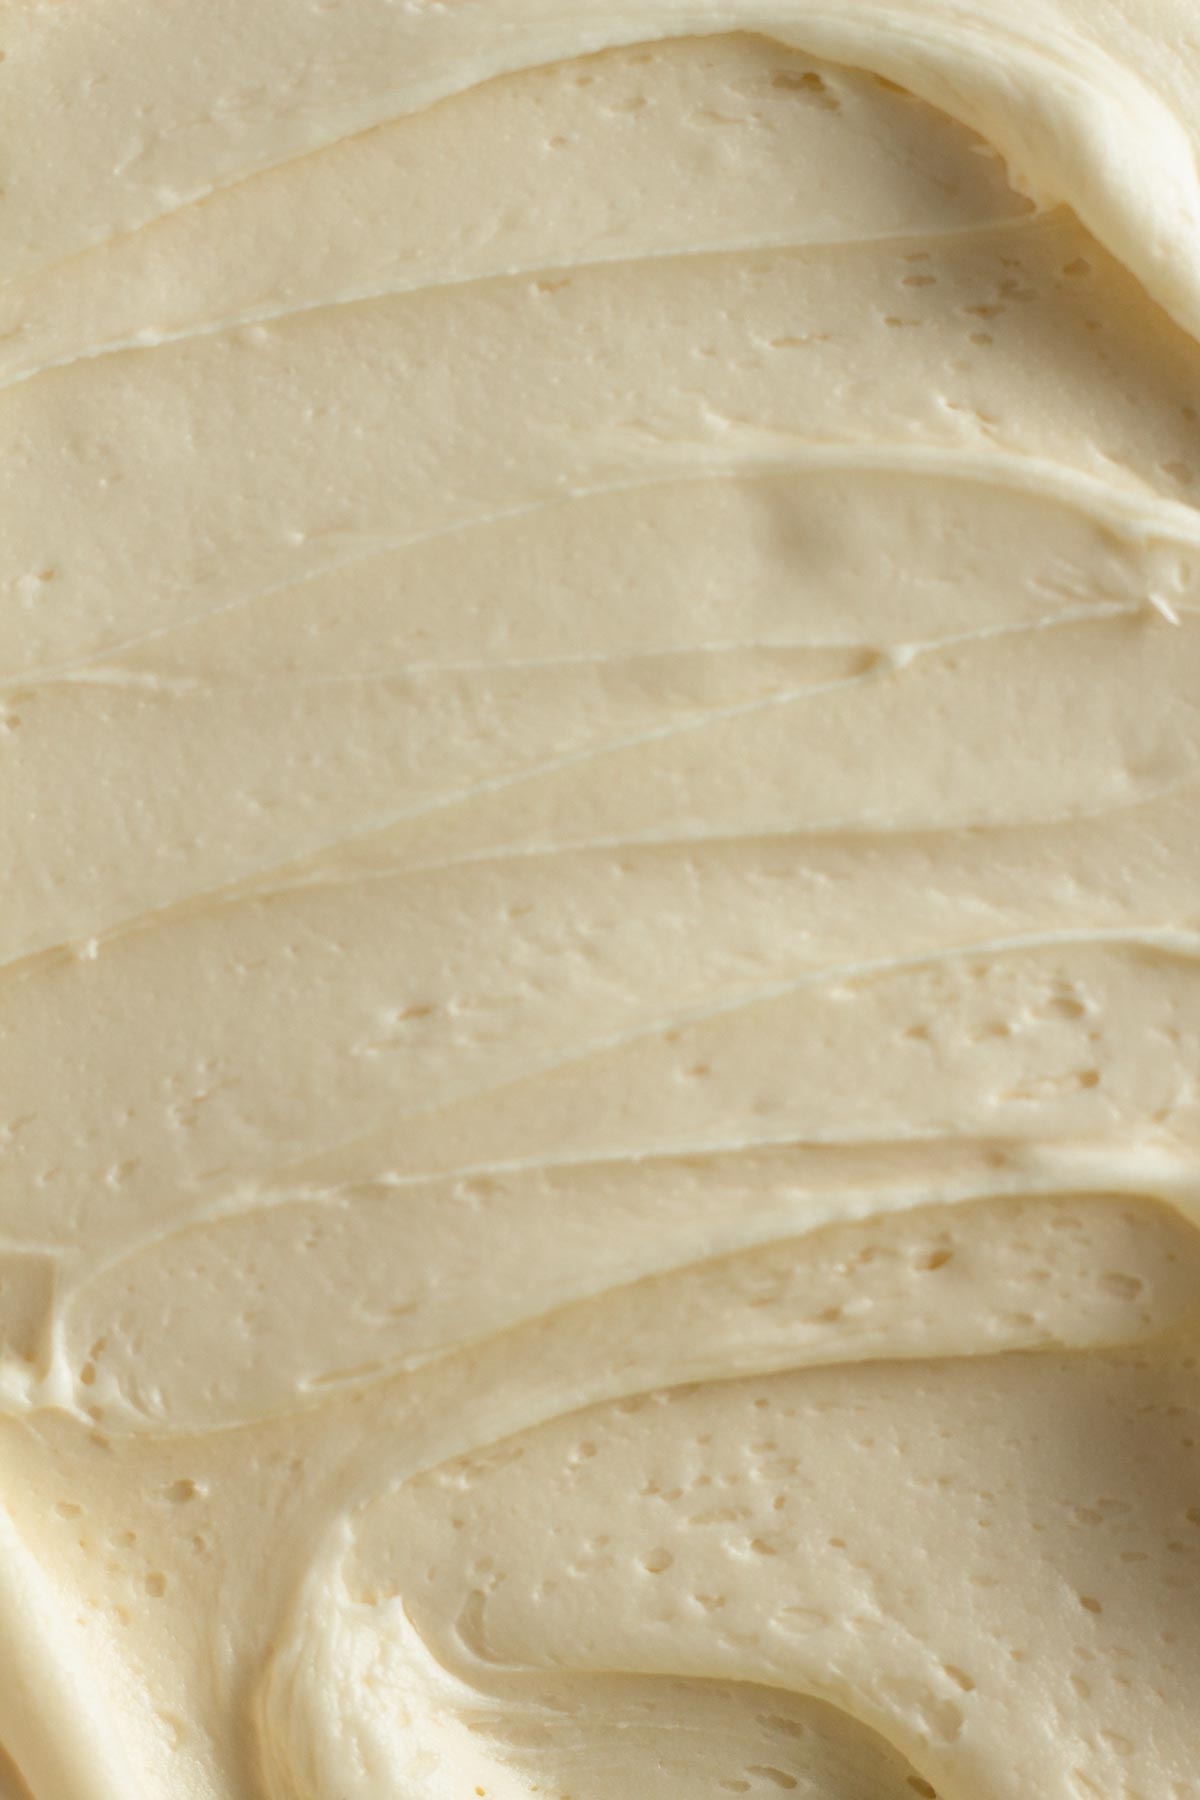 close up view of vanilla frosting